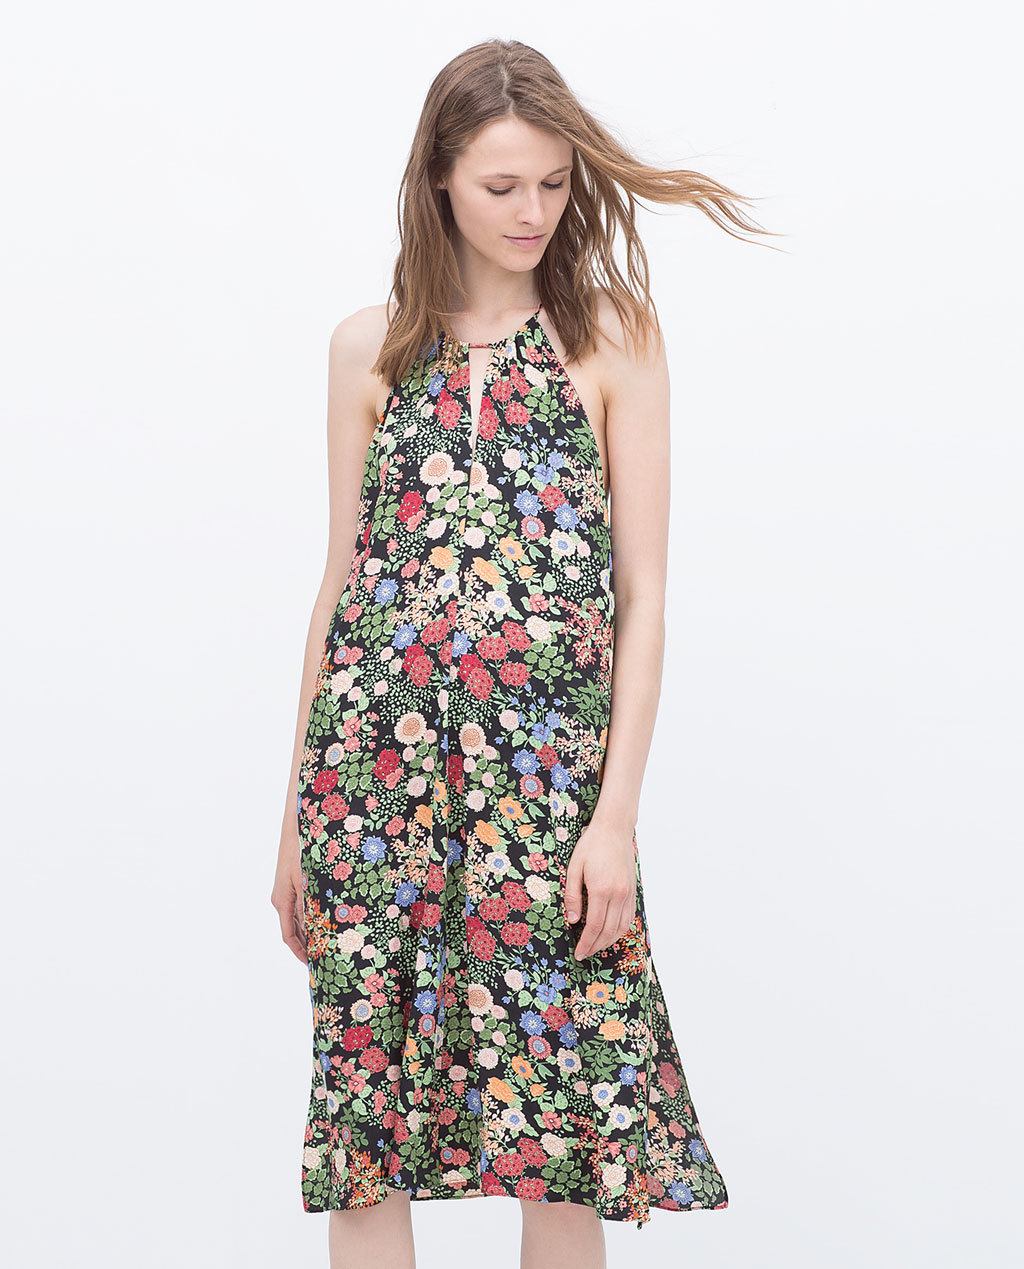 Printed Dress - style: a-line; length: below the knee; fit: loose; sleeve style: sleeveless; neckline: low halter neck; secondary colour: emerald green; predominant colour: black; occasions: casual, evening; fibres: polyester/polyamide - 100%; hip detail: subtle/flattering hip detail; sleeve length: sleeveless; pattern type: fabric; pattern size: standard; pattern: florals; texture group: woven light midweight; season: s/s 2015; multicoloured: multicoloured; wardrobe: highlight